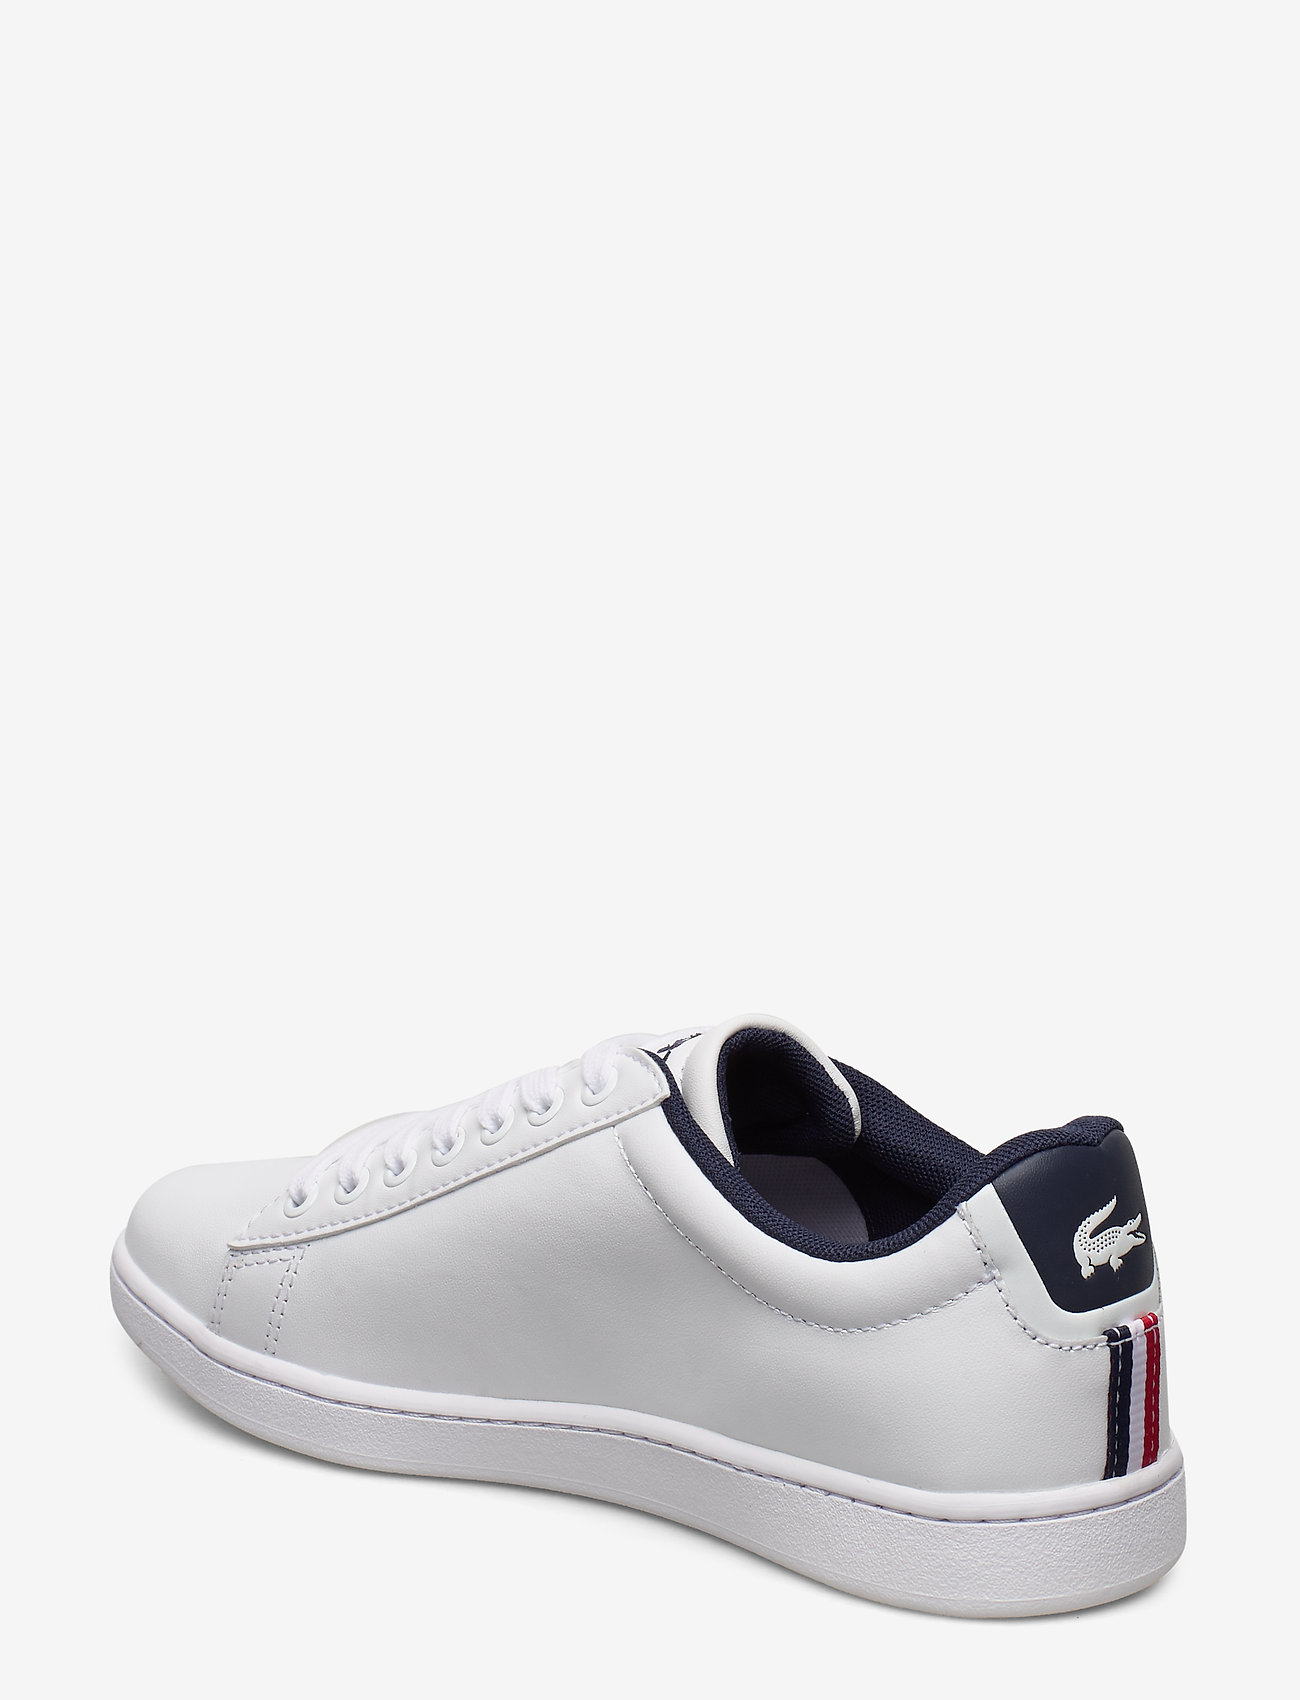 Carnaby Evo Tri 1sfa (Wht/nvy/red Lth/syn) - Lacoste Shoes